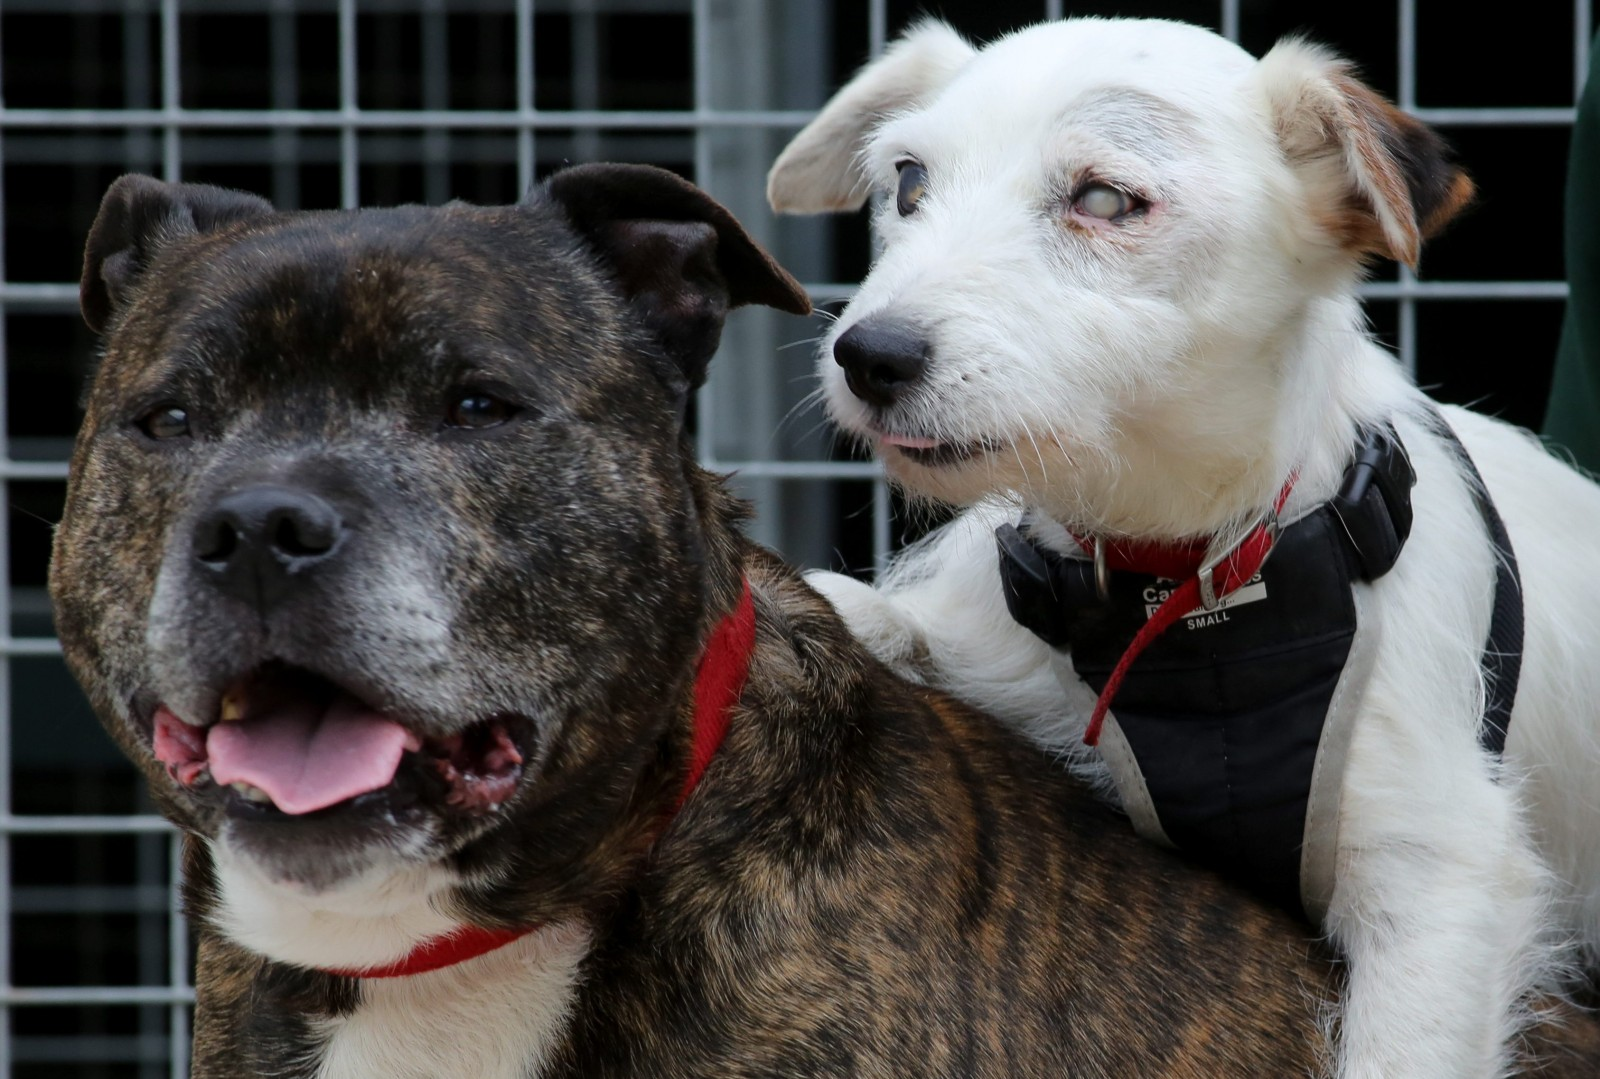 The amazing reason why these two abandoned dogs MUST stay together